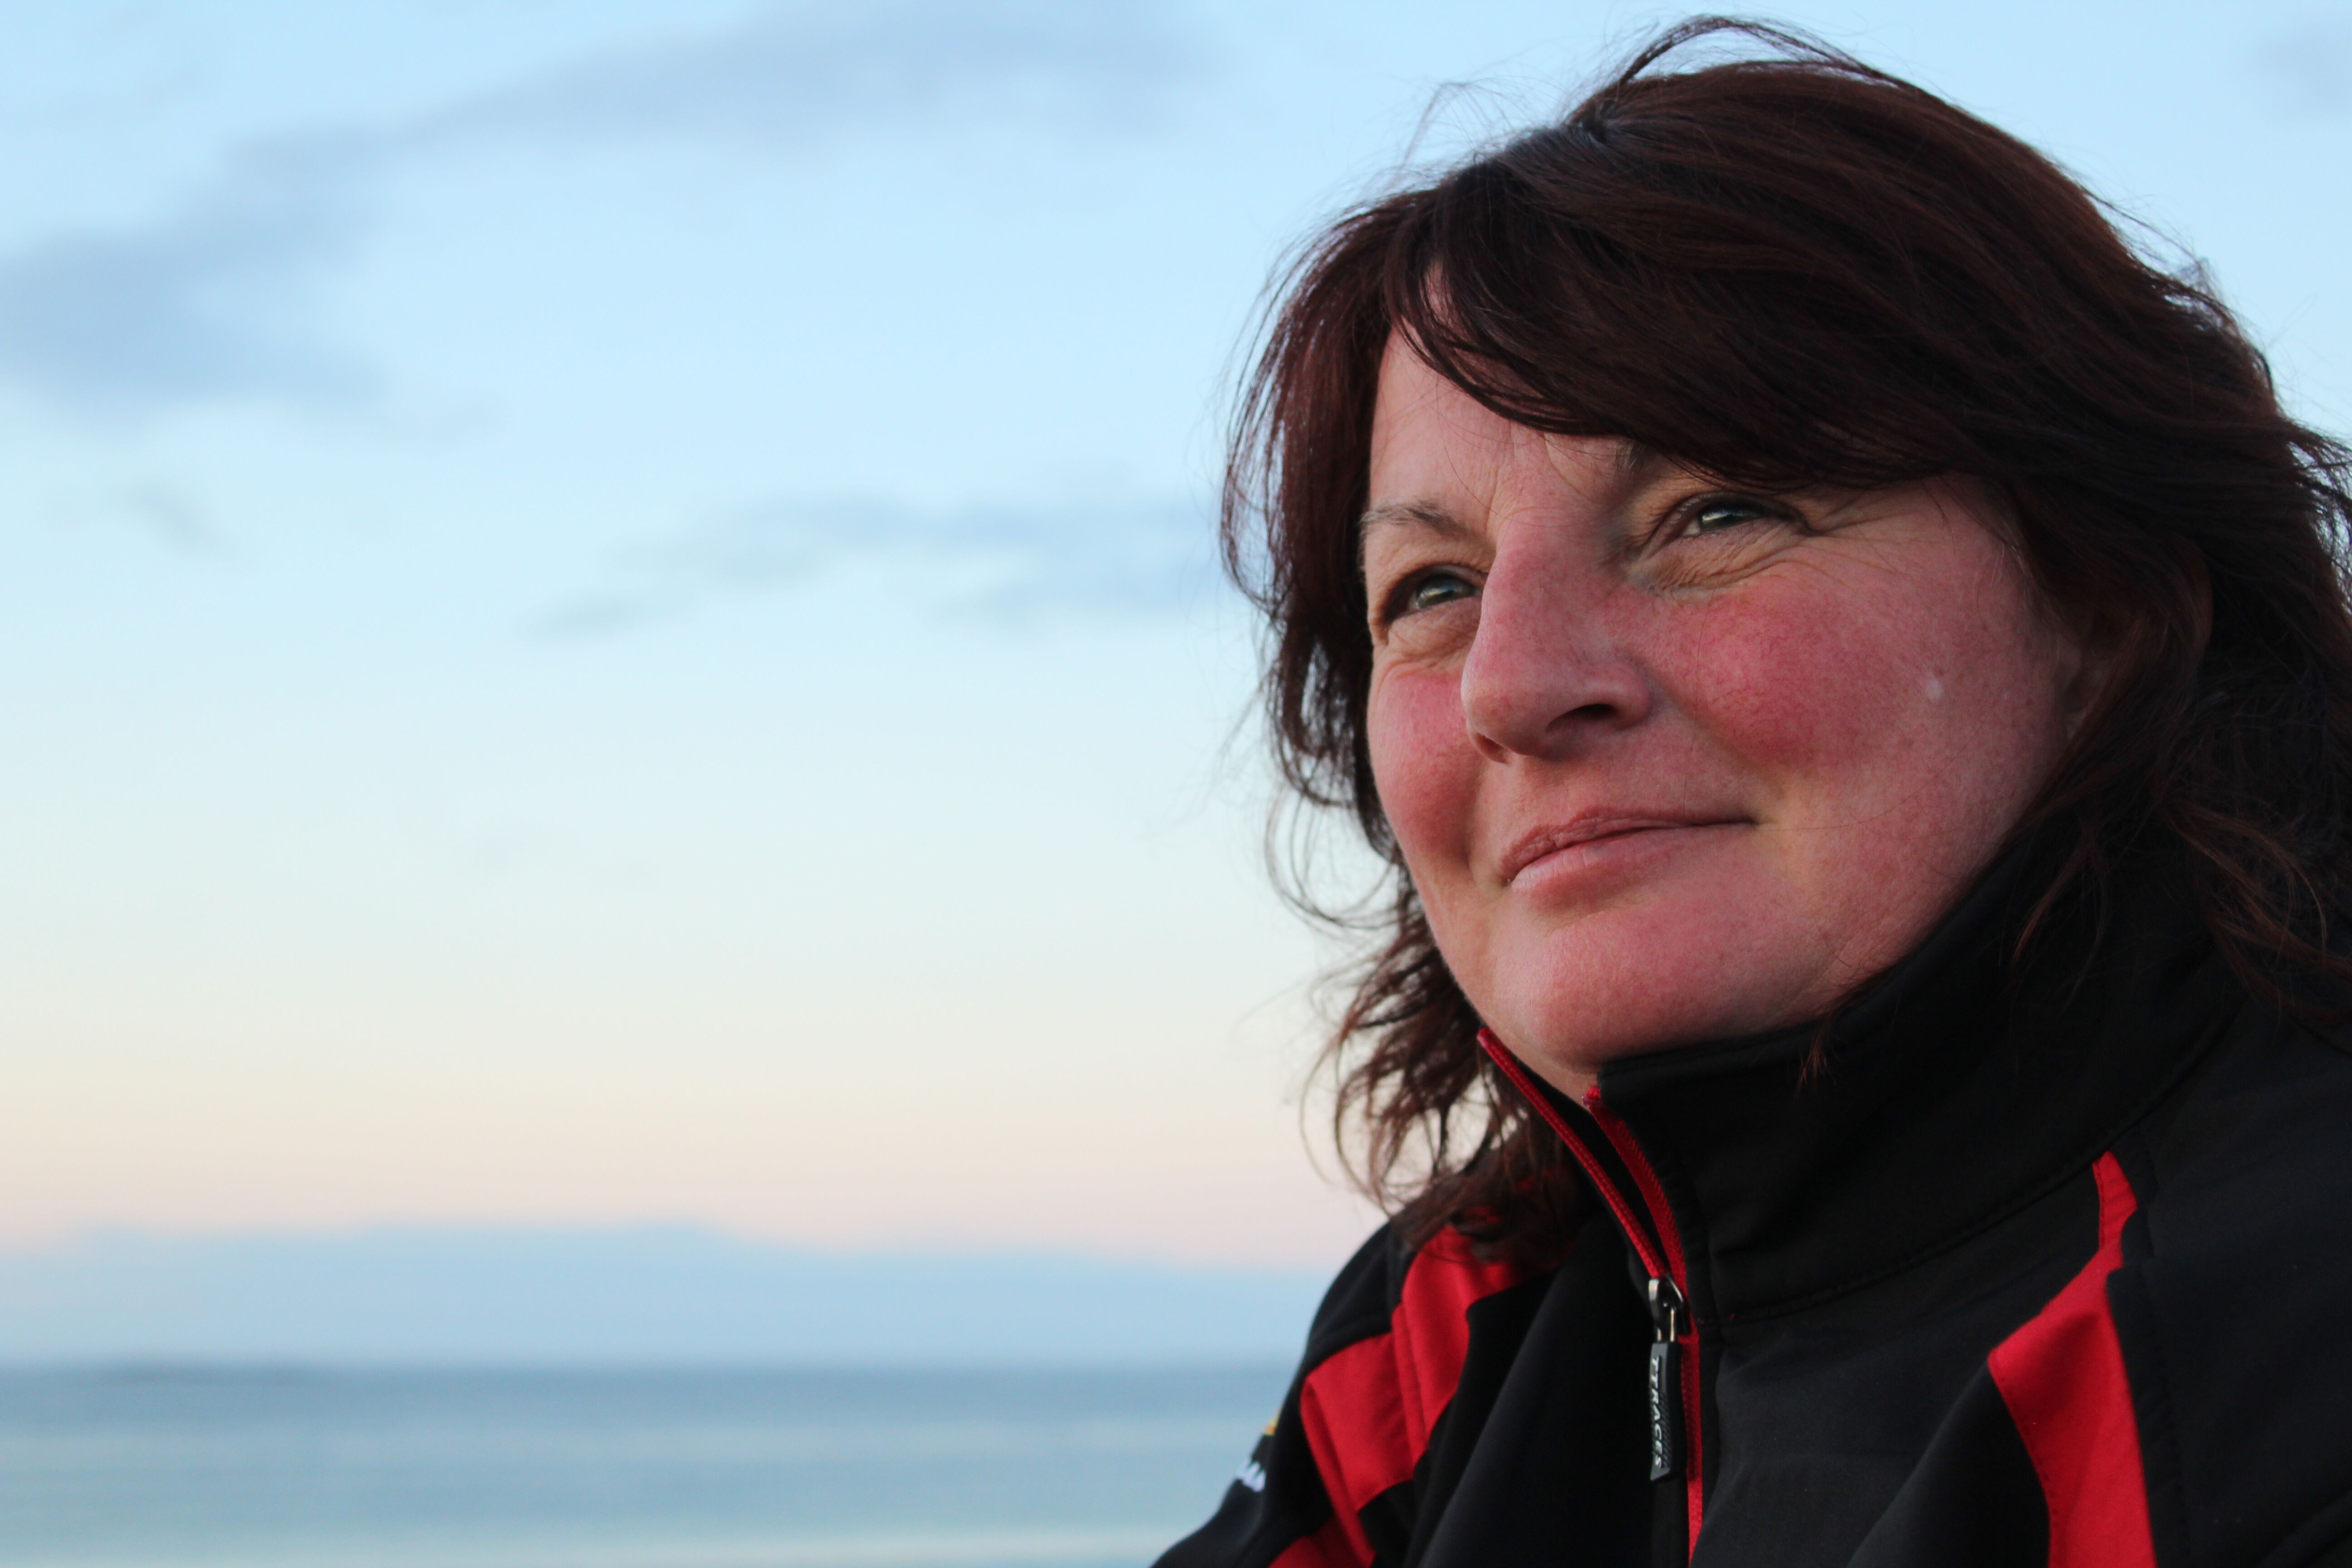 X Ray Mag Iwd Sally Cartwright To Speak At The Explorers Club Women Of Exploration Event